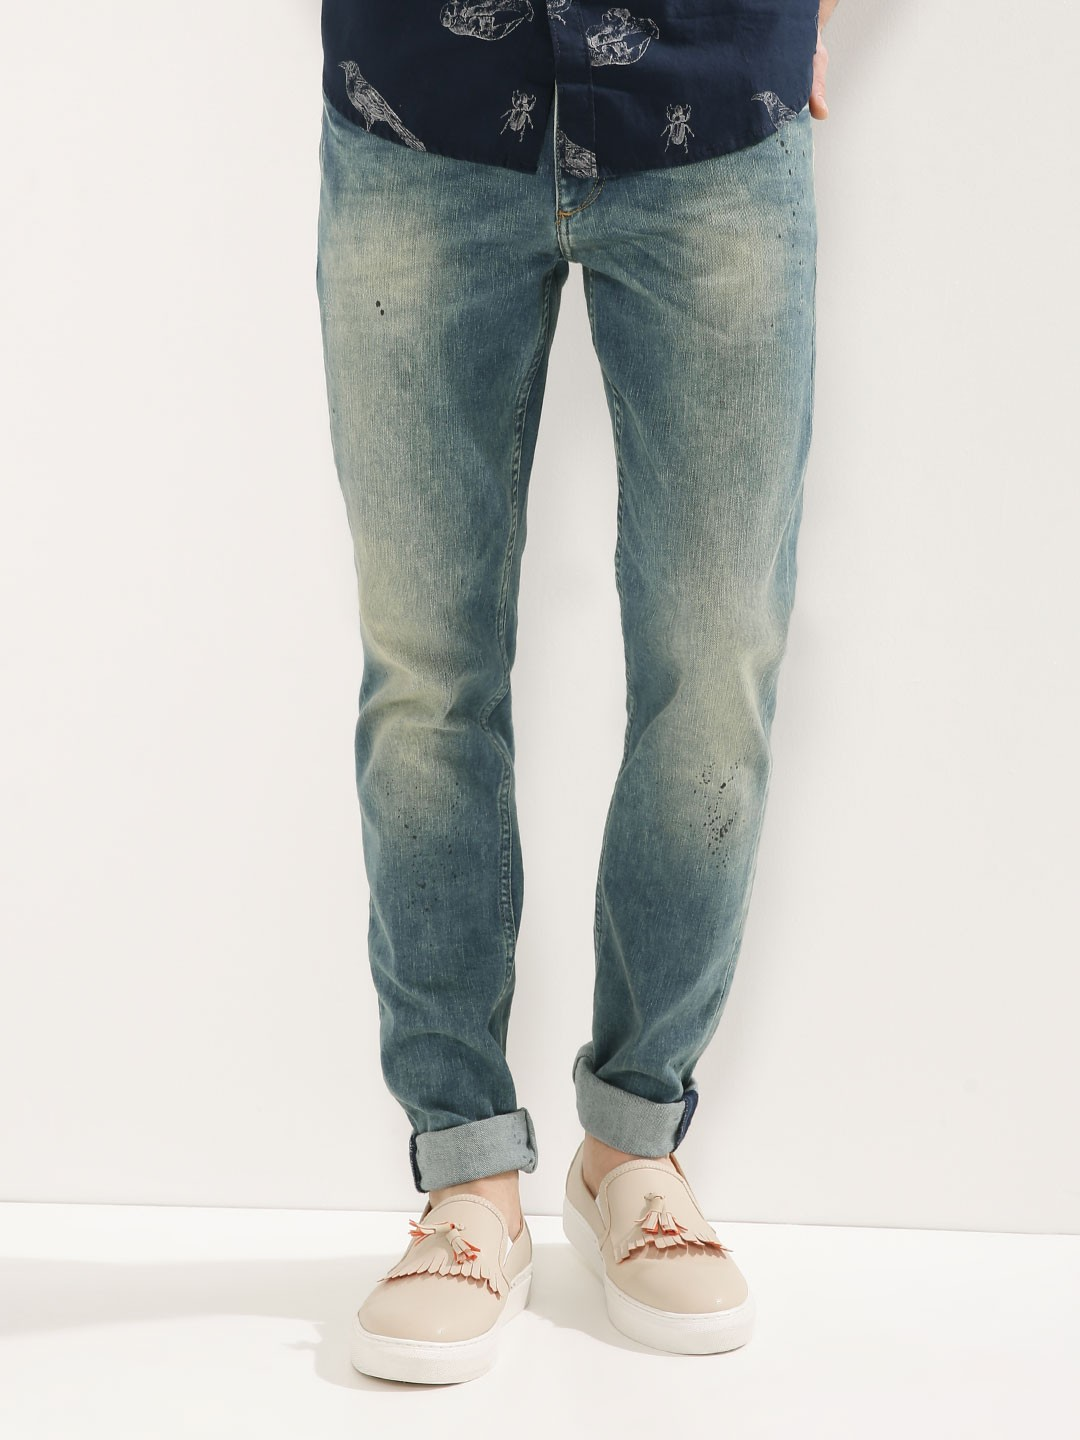 jack jones tim slim fit light wash jeans for men men 39 s blue slim. Black Bedroom Furniture Sets. Home Design Ideas